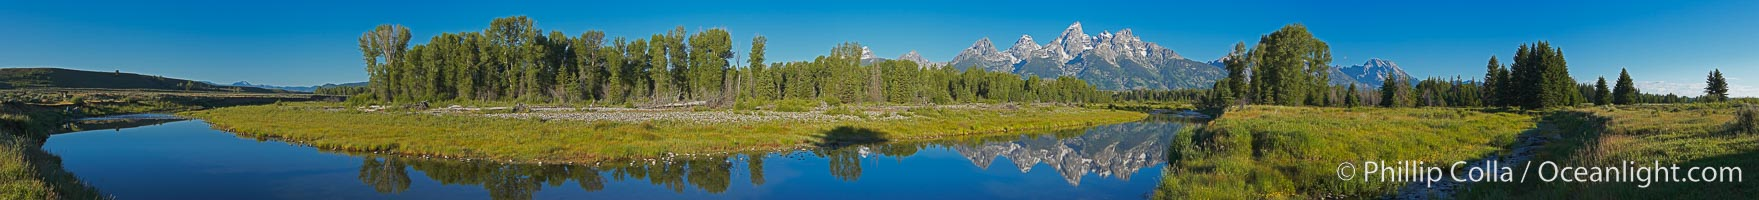 Panorama of the Teton Range reflected in the still waters of Schwabacher Landing, a sidewater of the Snake River. Grand Teton National Park, Wyoming, USA, natural history stock photograph, photo id 19129